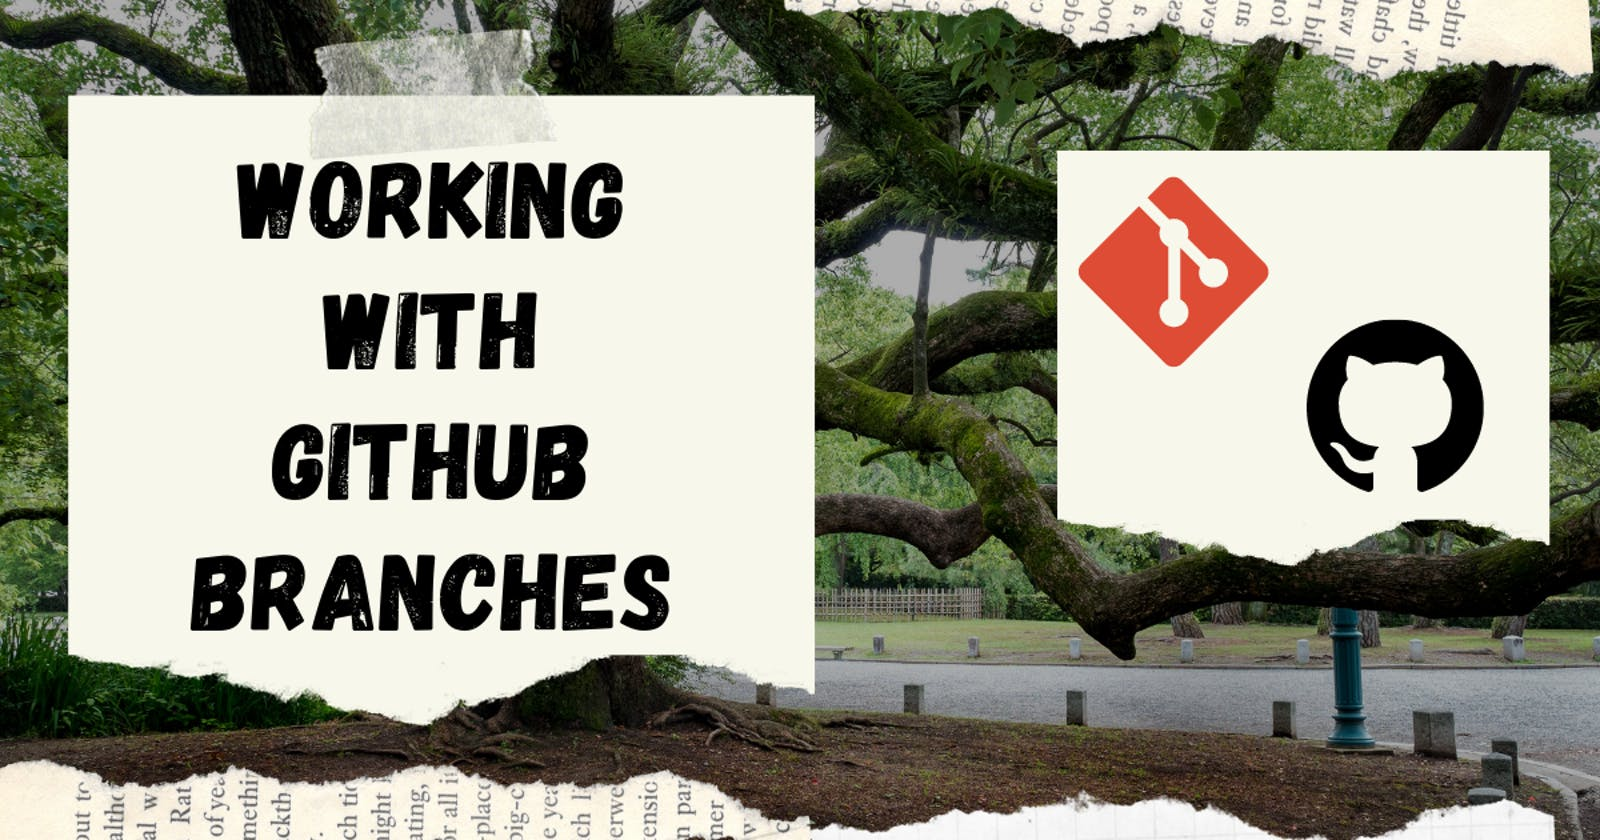 Working with GitHub Branches